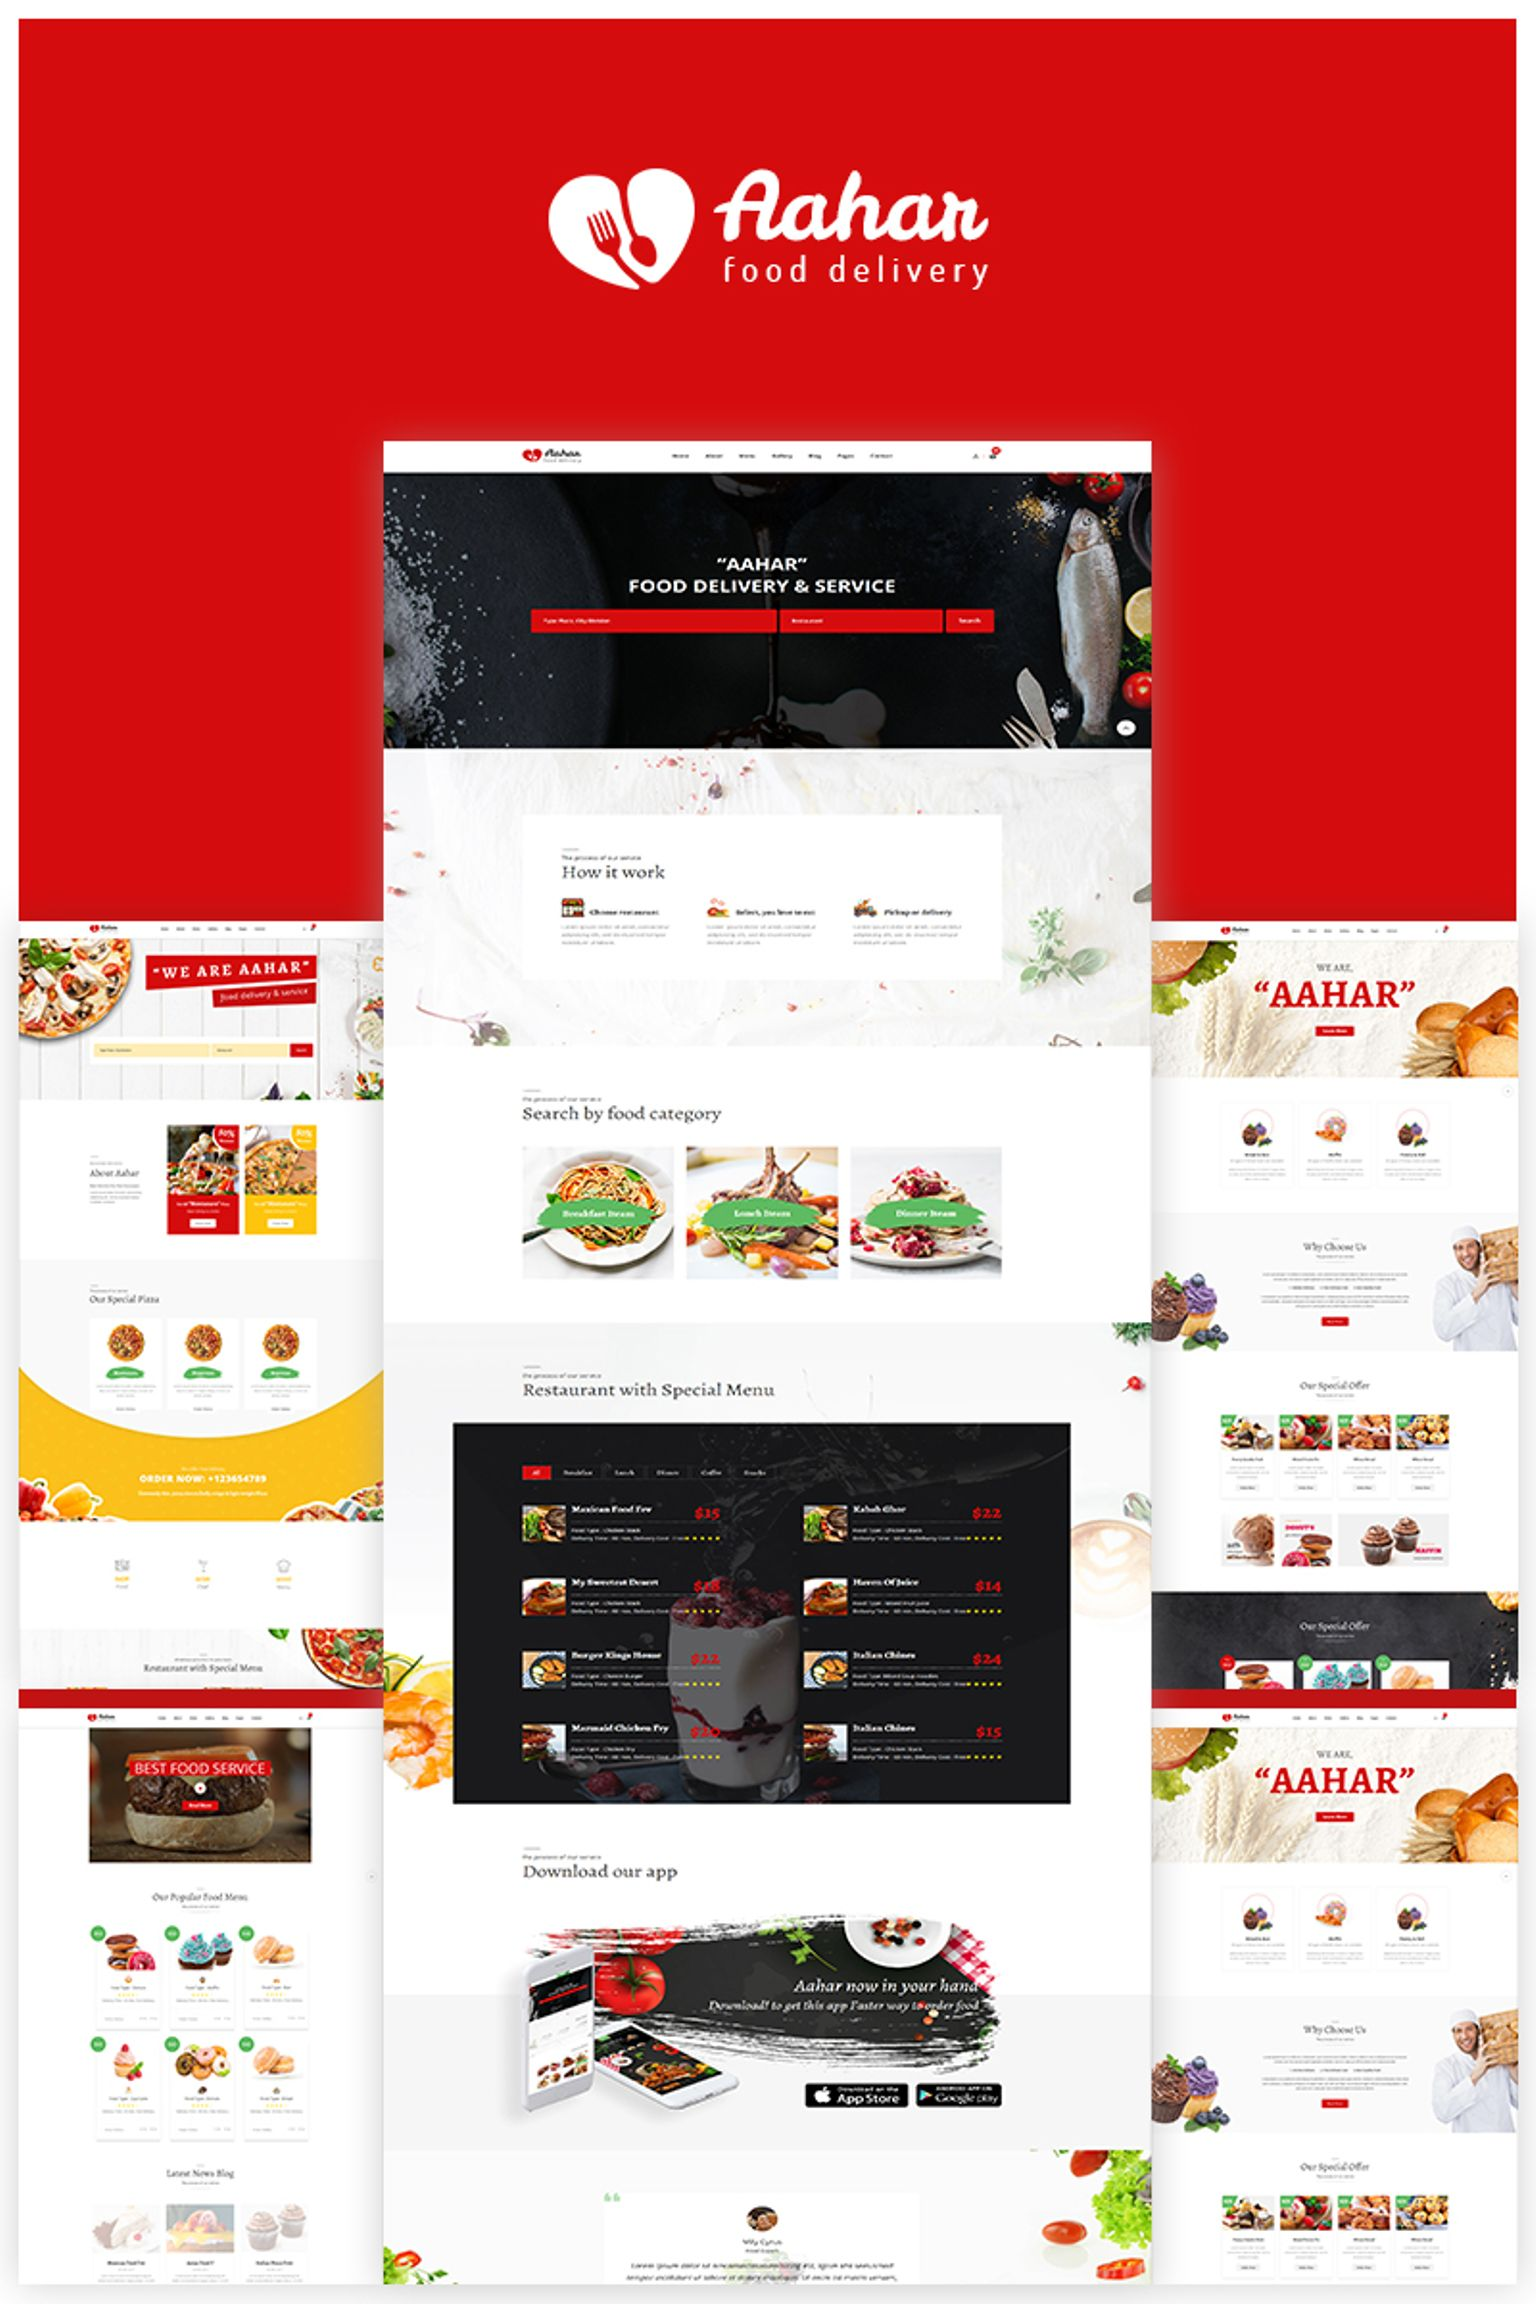 aahar food delivery bootstrap4 website template 67272. Black Bedroom Furniture Sets. Home Design Ideas